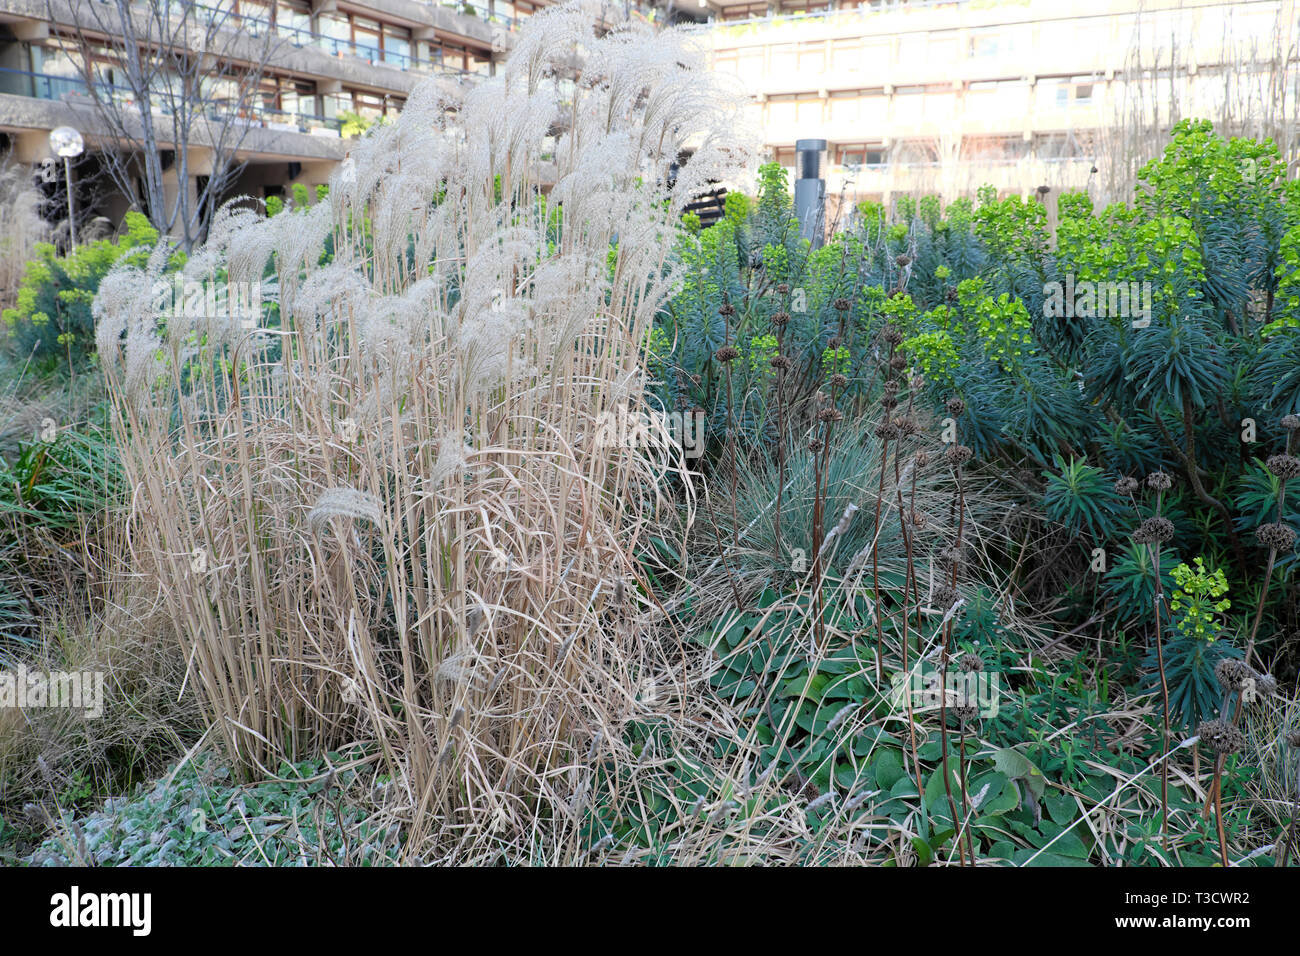 Ornamental Grasses Euphorbias In Bloom In Warm Winter In Beech